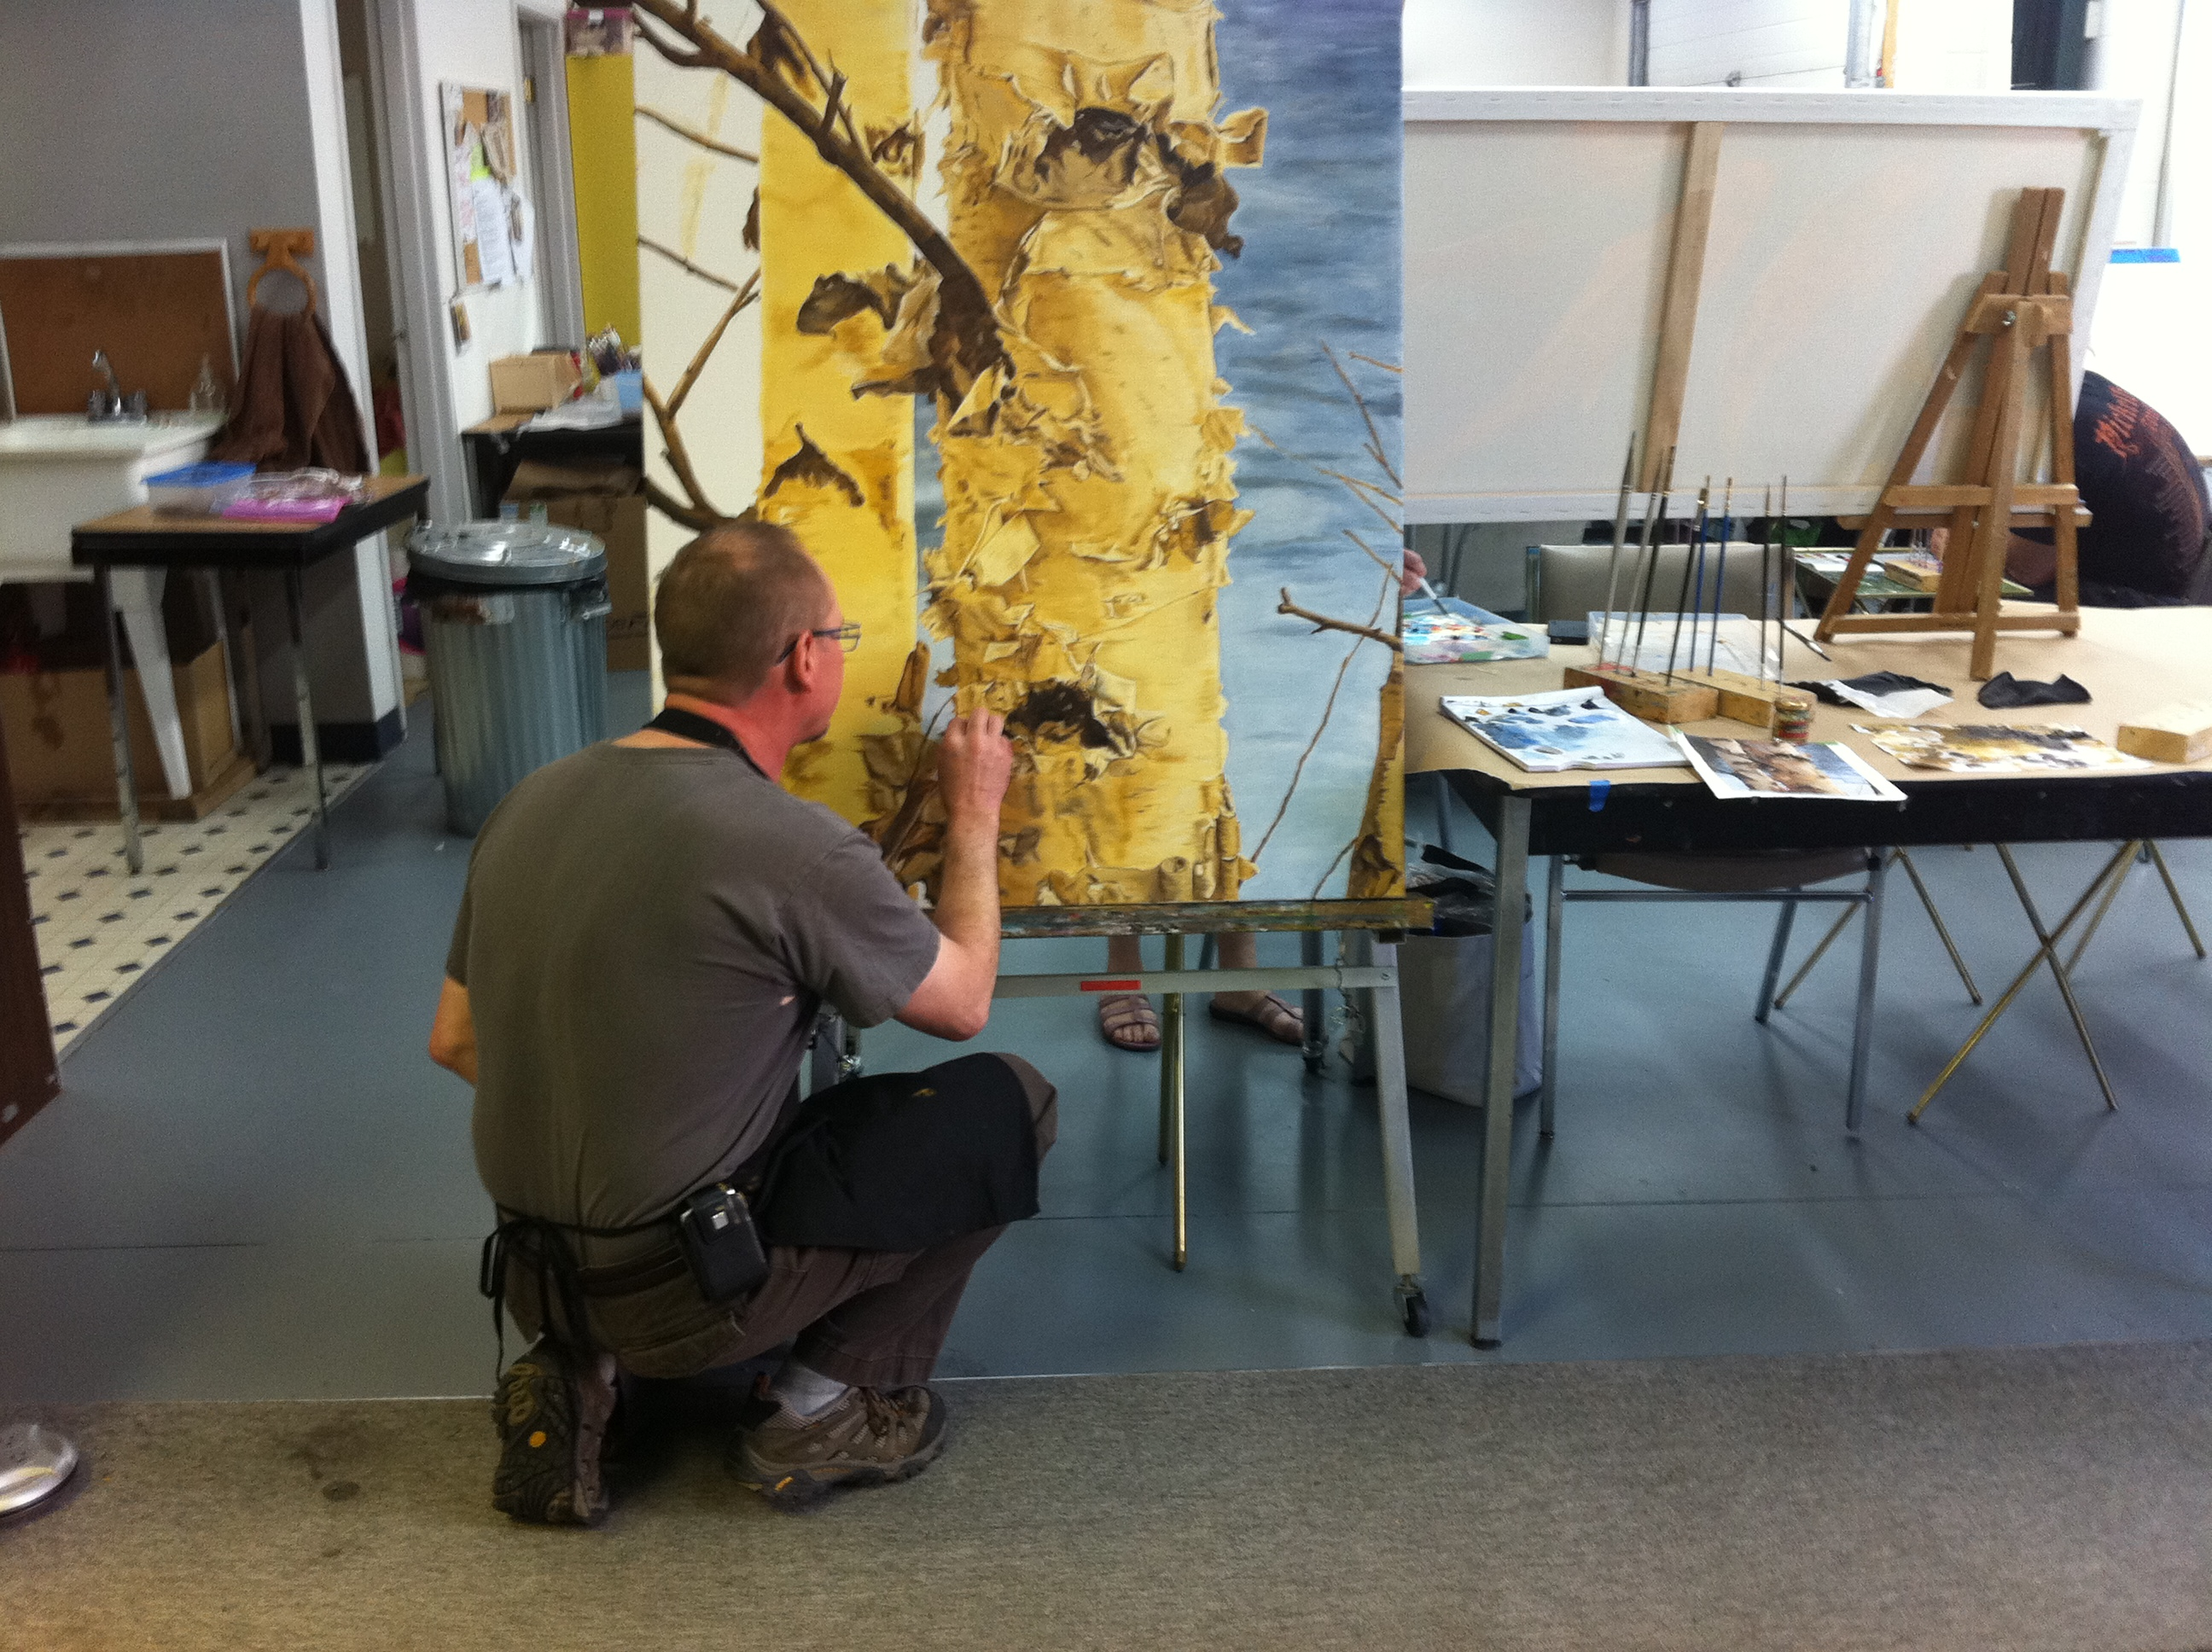 Color being added to a large birch tree oil painting.